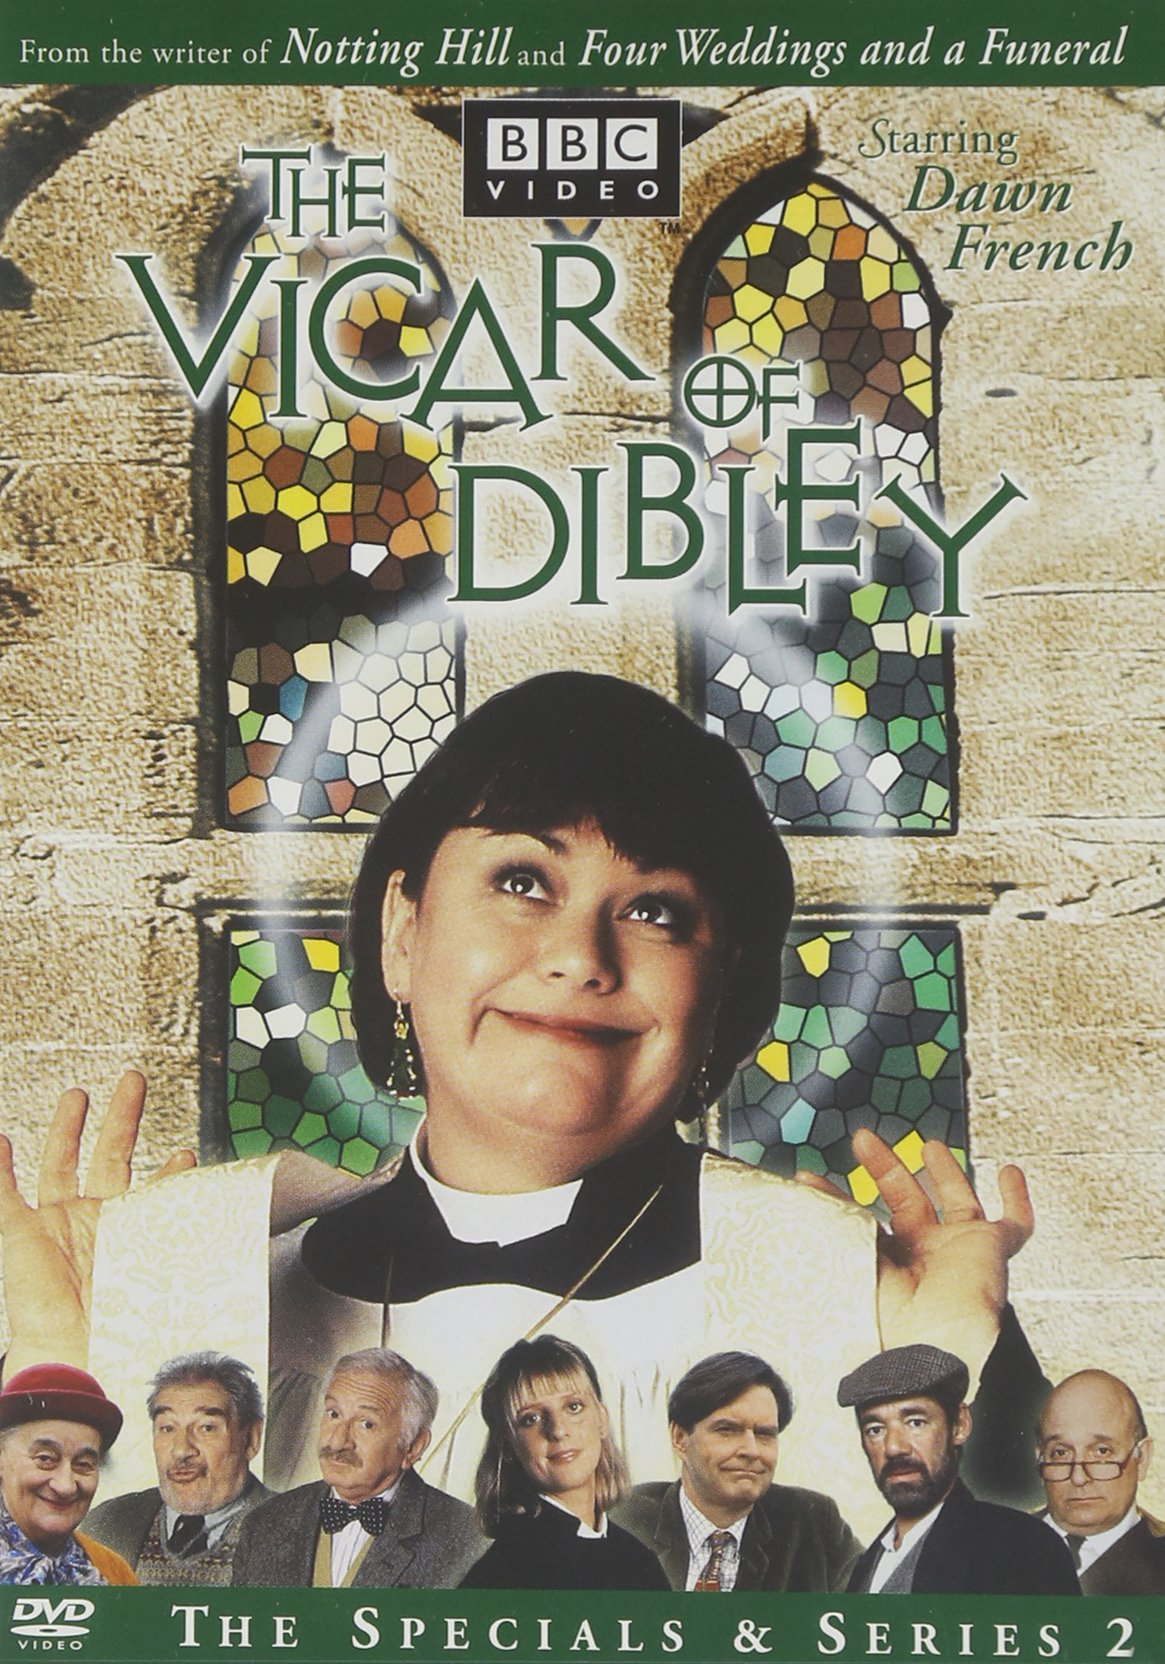 The Vicar of Dibley - The Complete Series 2 & the Specials